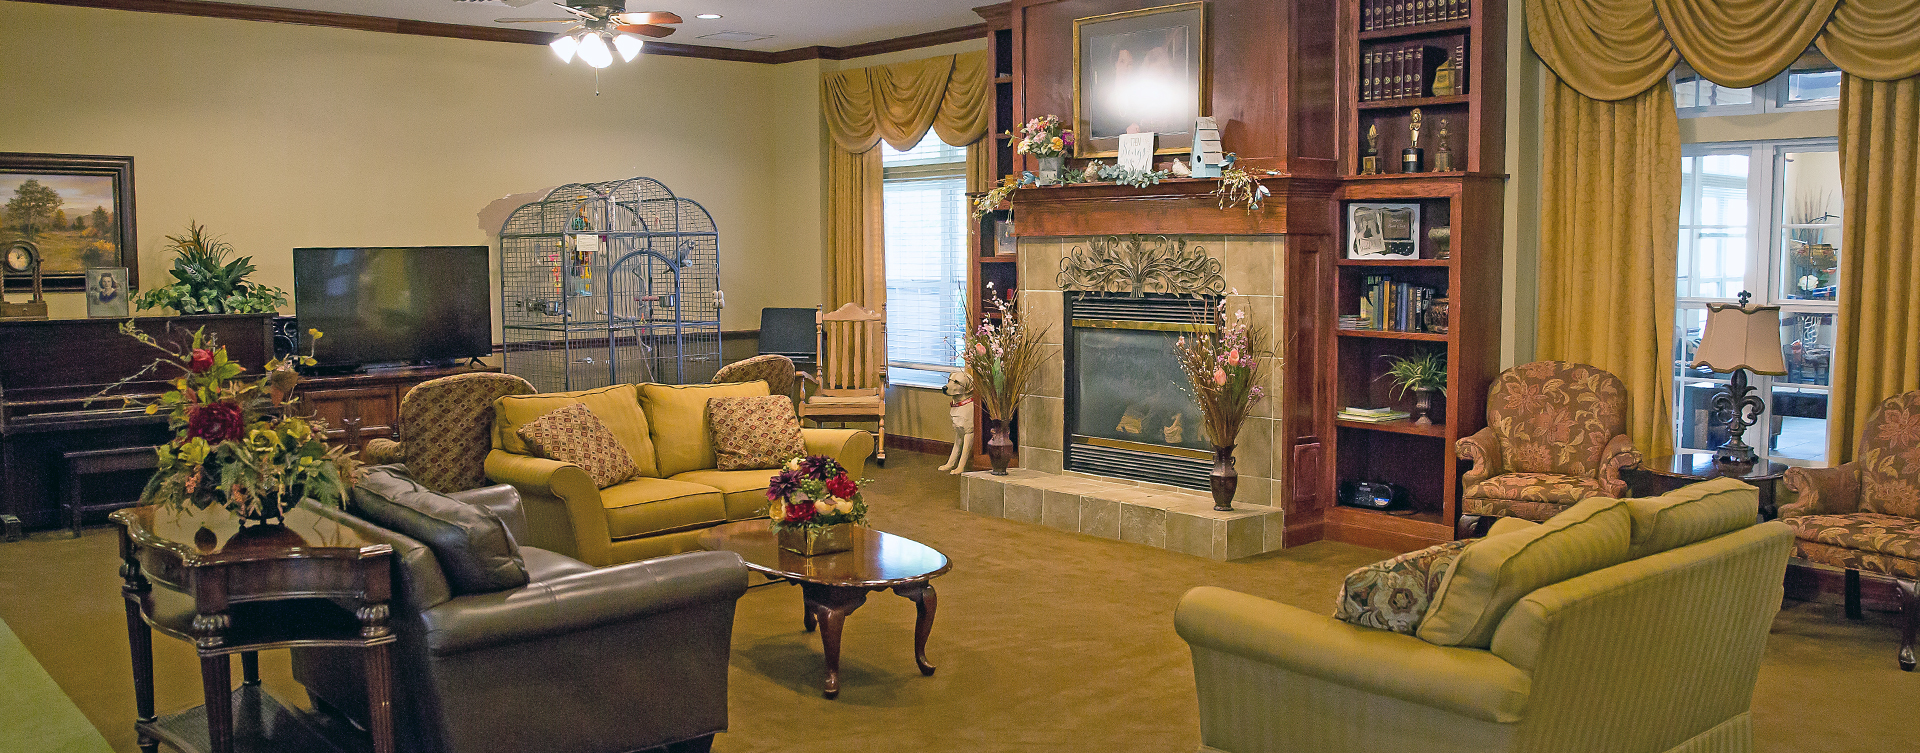 Enjoy a good book in the living room at Bickford of Battle Creek